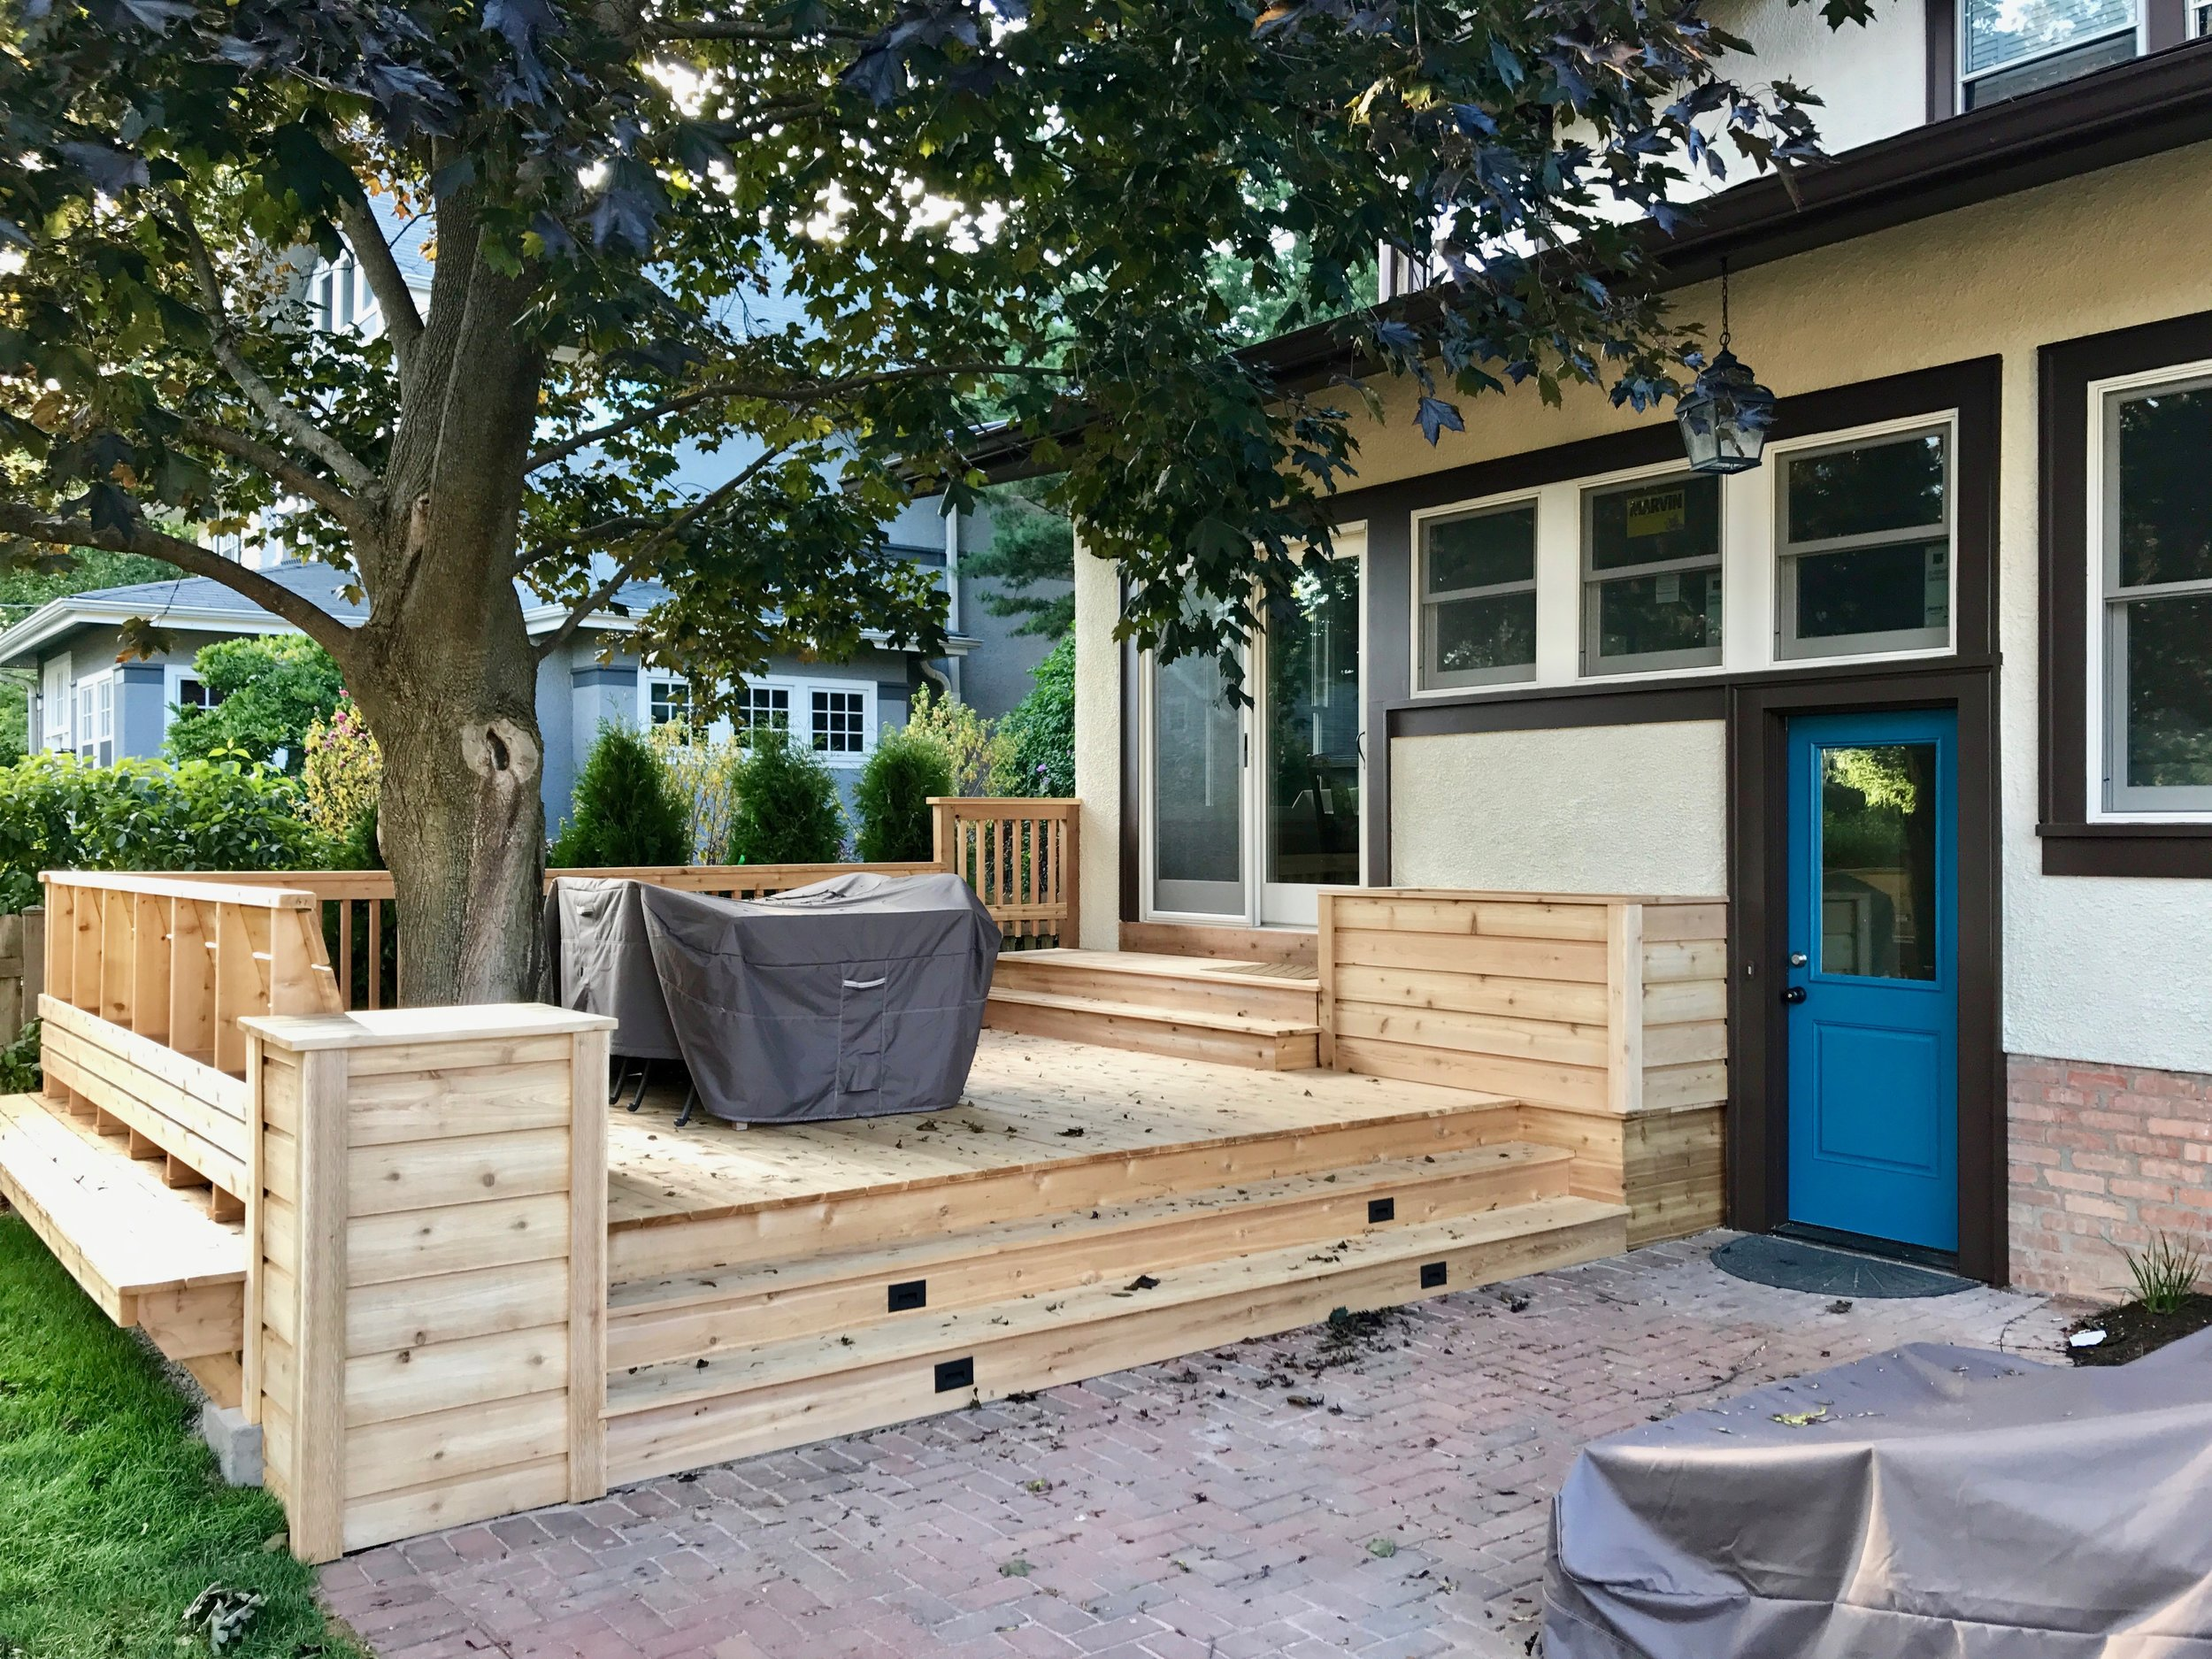 A view of the finished deck with all new MARVIN windows, planter box, pendant lighting, and door. The transformer for the deck lighting is hidden inside the planter box.